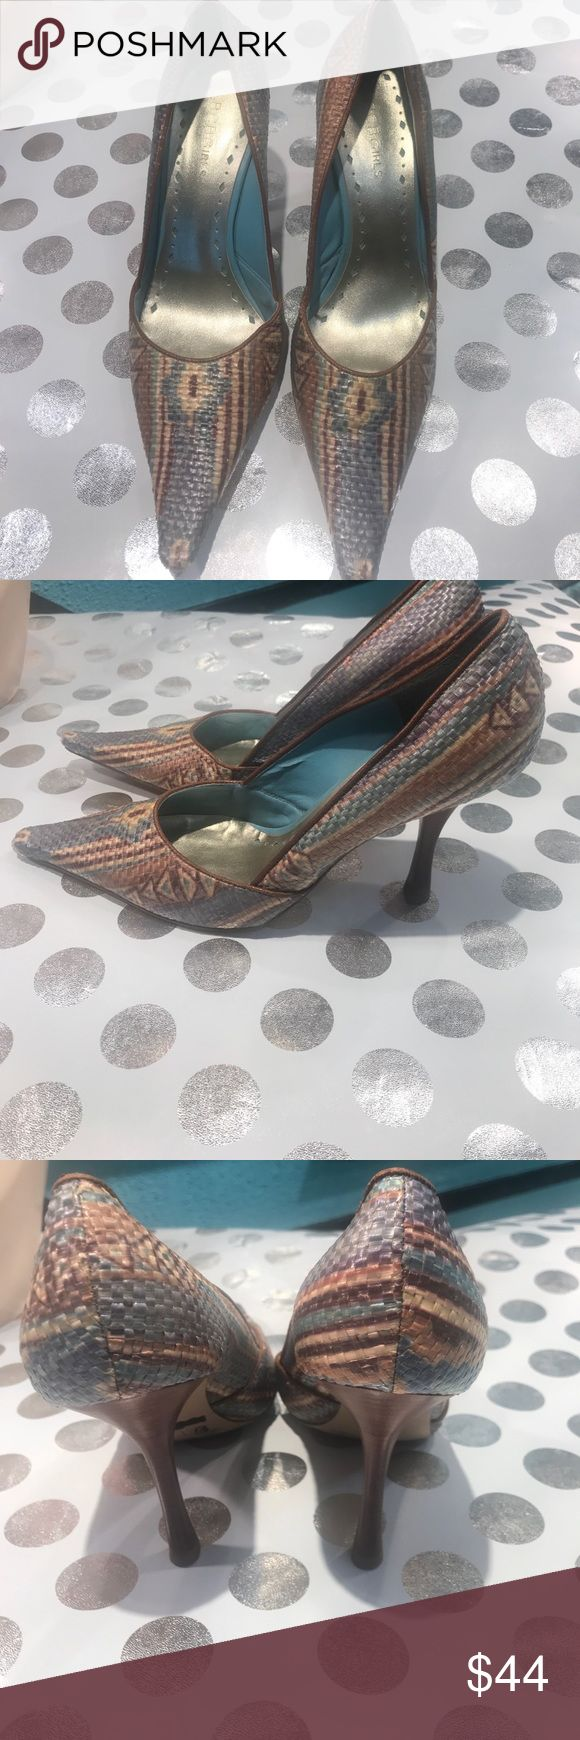 """BCB GIRLS leather shoes Stunning pair of  woman leather woven shoes. Size 8B colors are blue, mauve, cream, brown And green. The shoes can be worn with many different outfits.  Heels are 4"""" BCB GIRLS Shoes Heels"""